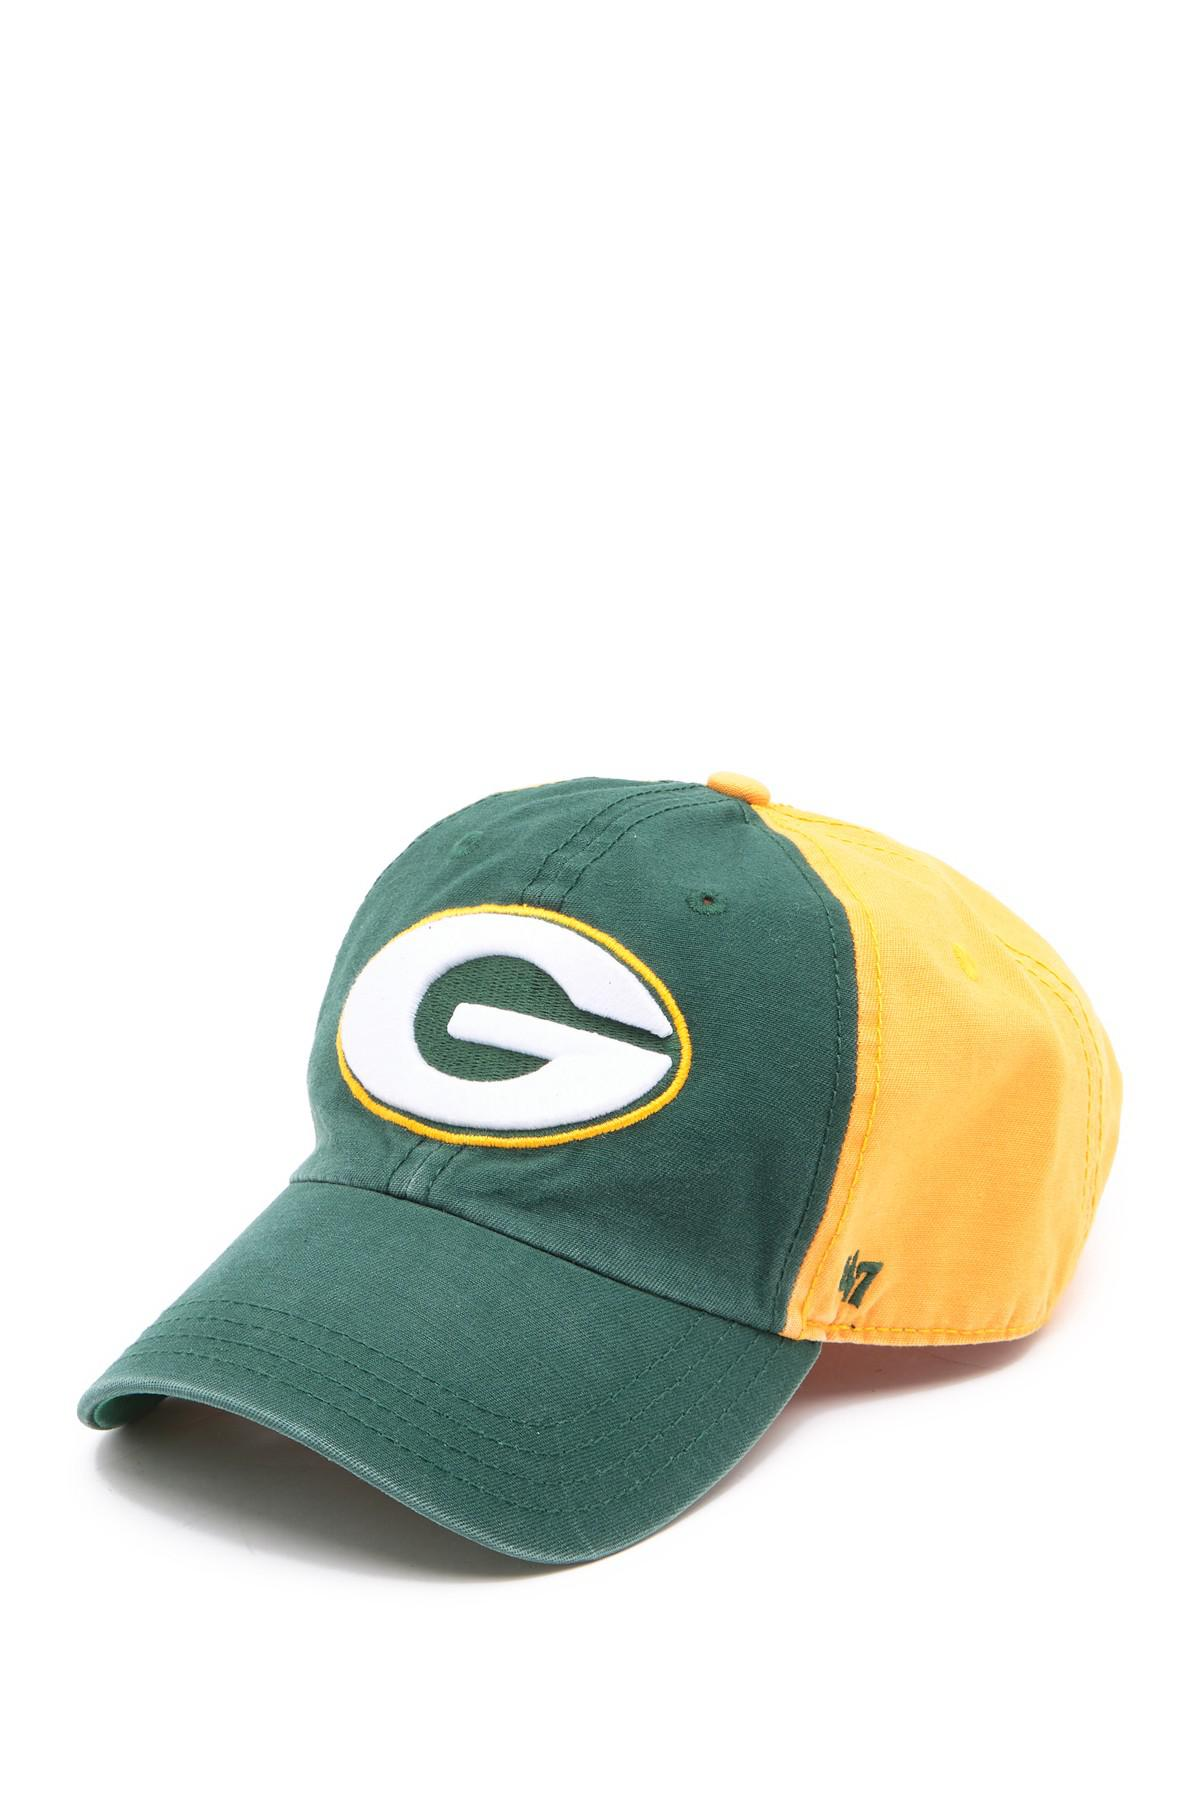 833e8e430b8eb Lyst - 47 Brand Nfl Flagstaff Packers Baseball Cap for Men